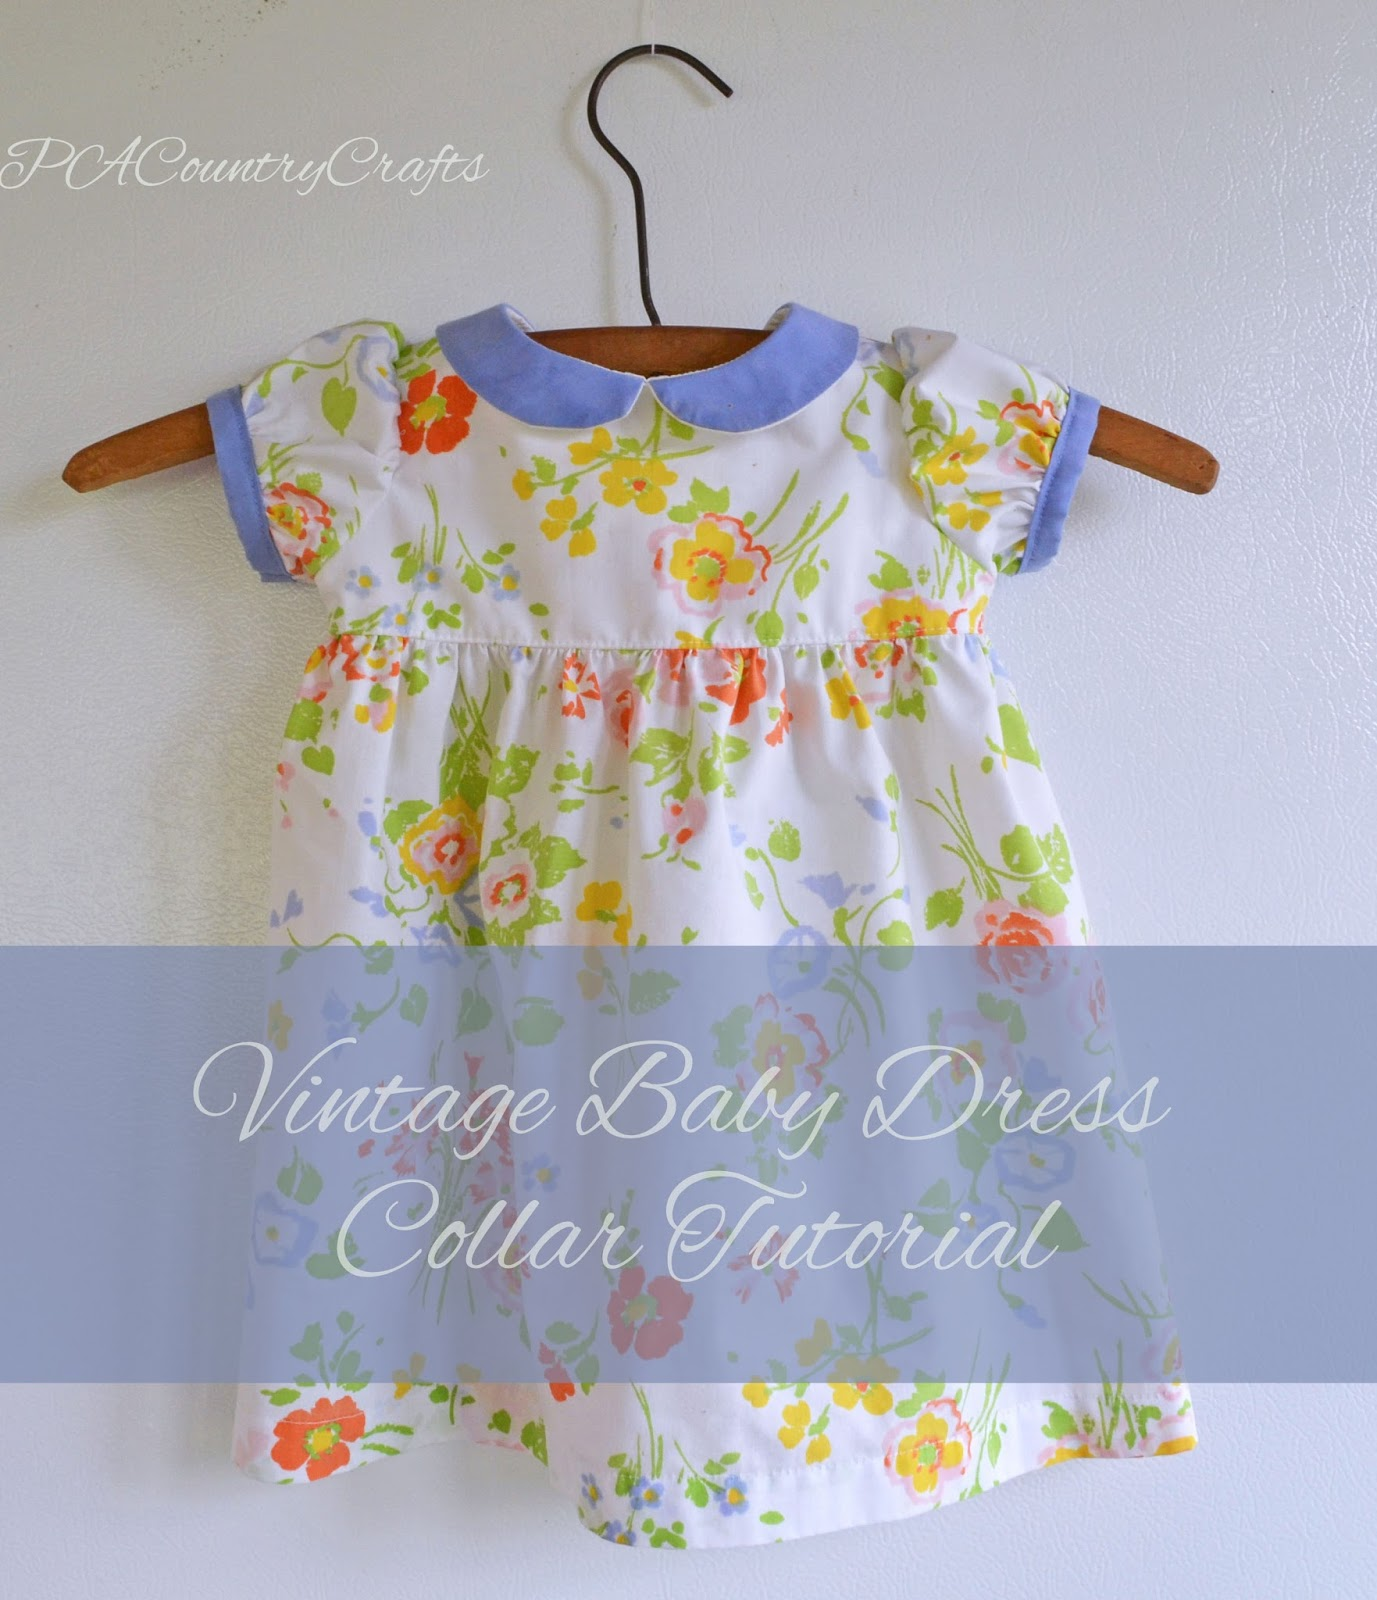 Vintage Baby Dress Collar Tutorial